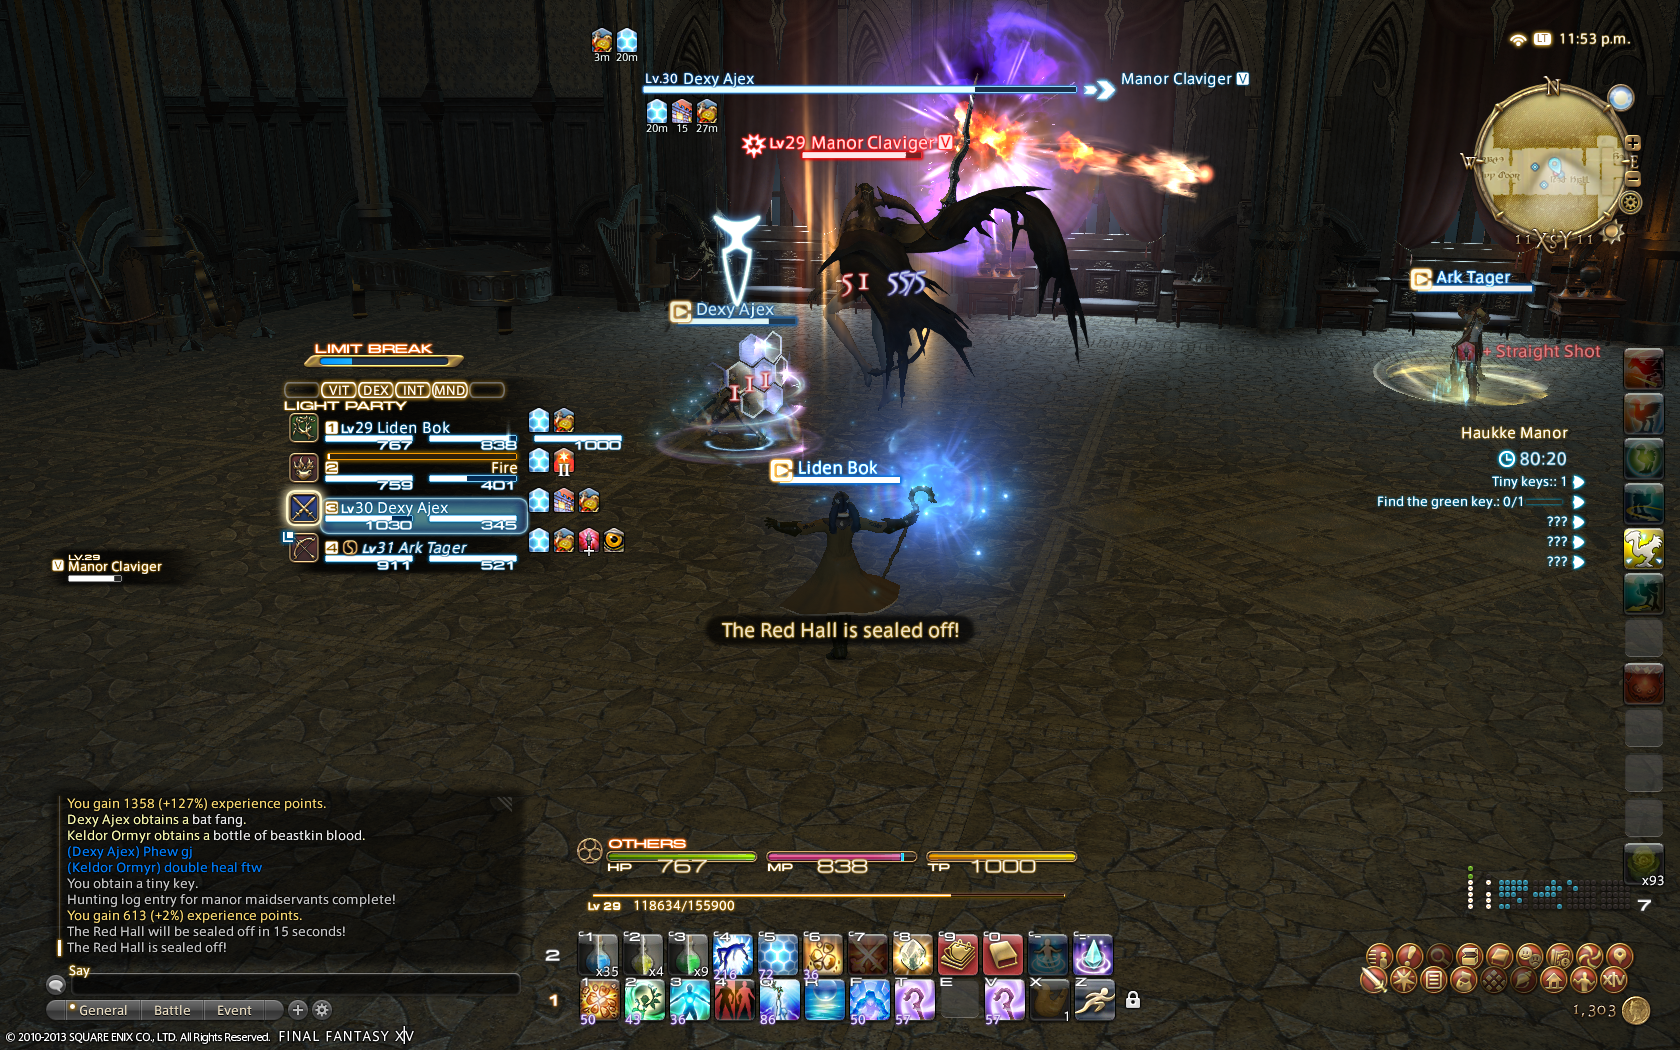 lidenbokvalour ffxiv limsa through tonight well screenshots lifted phase beta